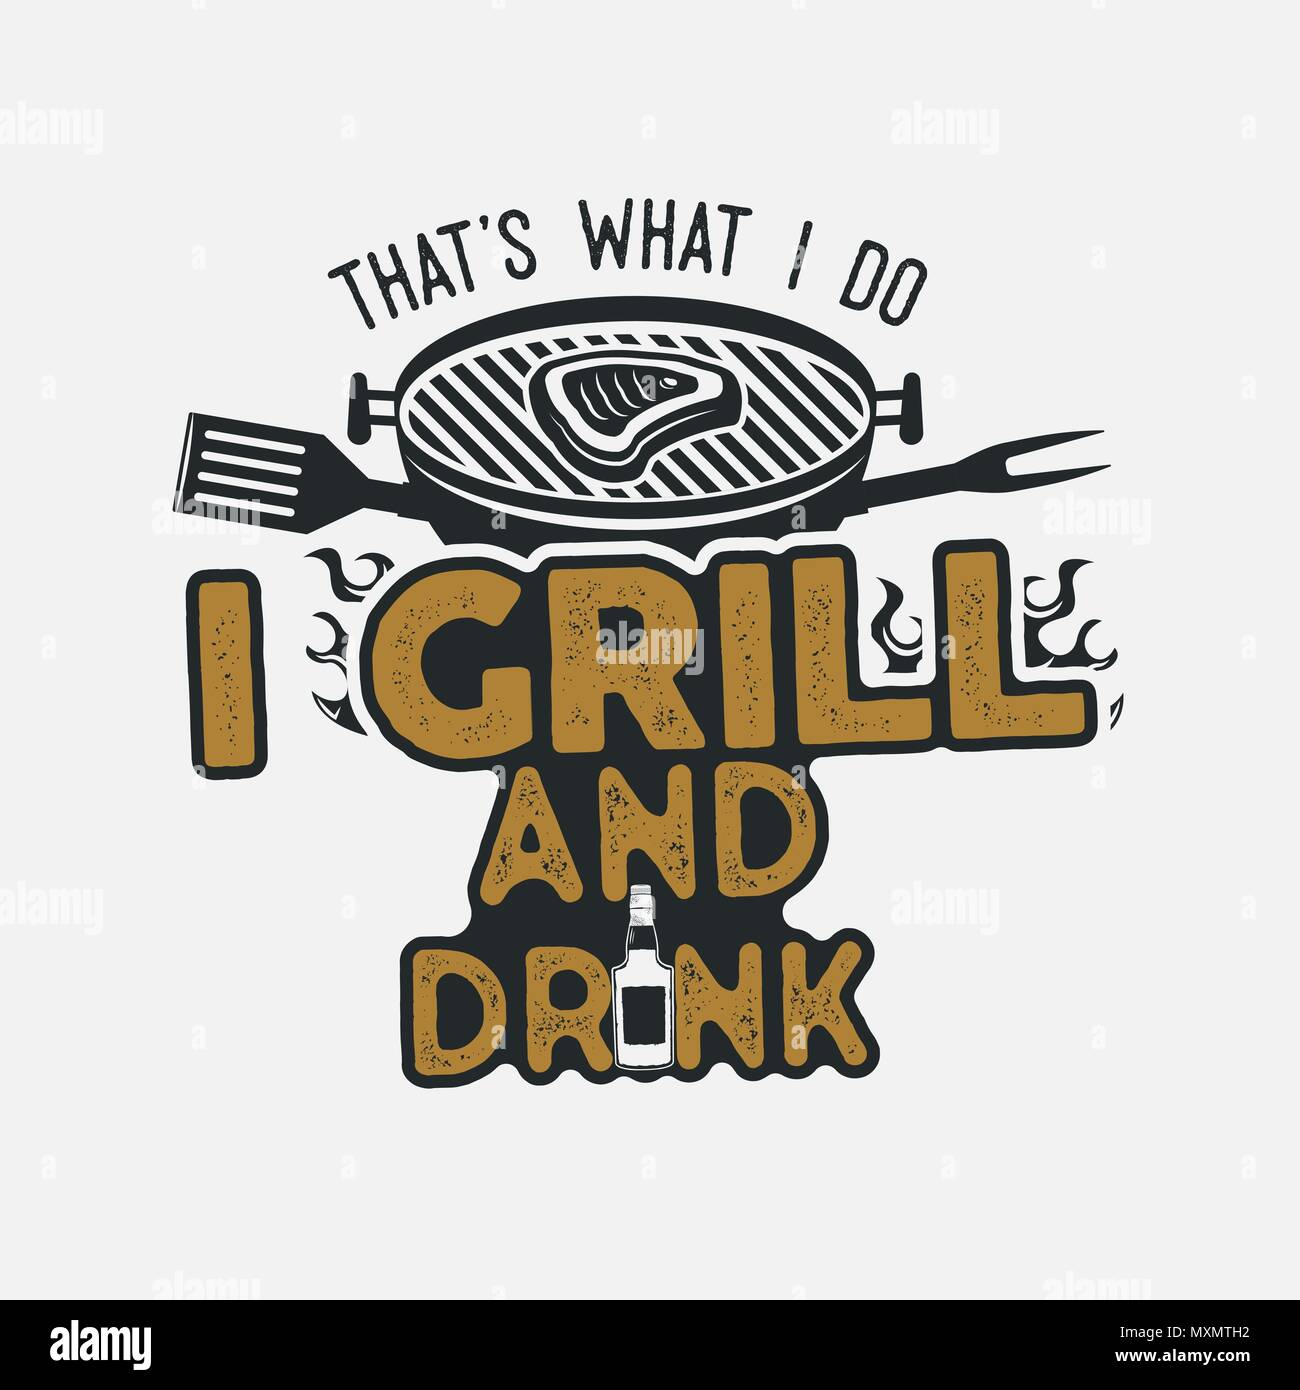 Thats what i do i drink and grill things retro bbq t-shirt design. Vintage hand drawn barbecue tee, emblem for person who love summer barbeque with friends and family. Fathers day gift. Vector isolate - Stock Vector